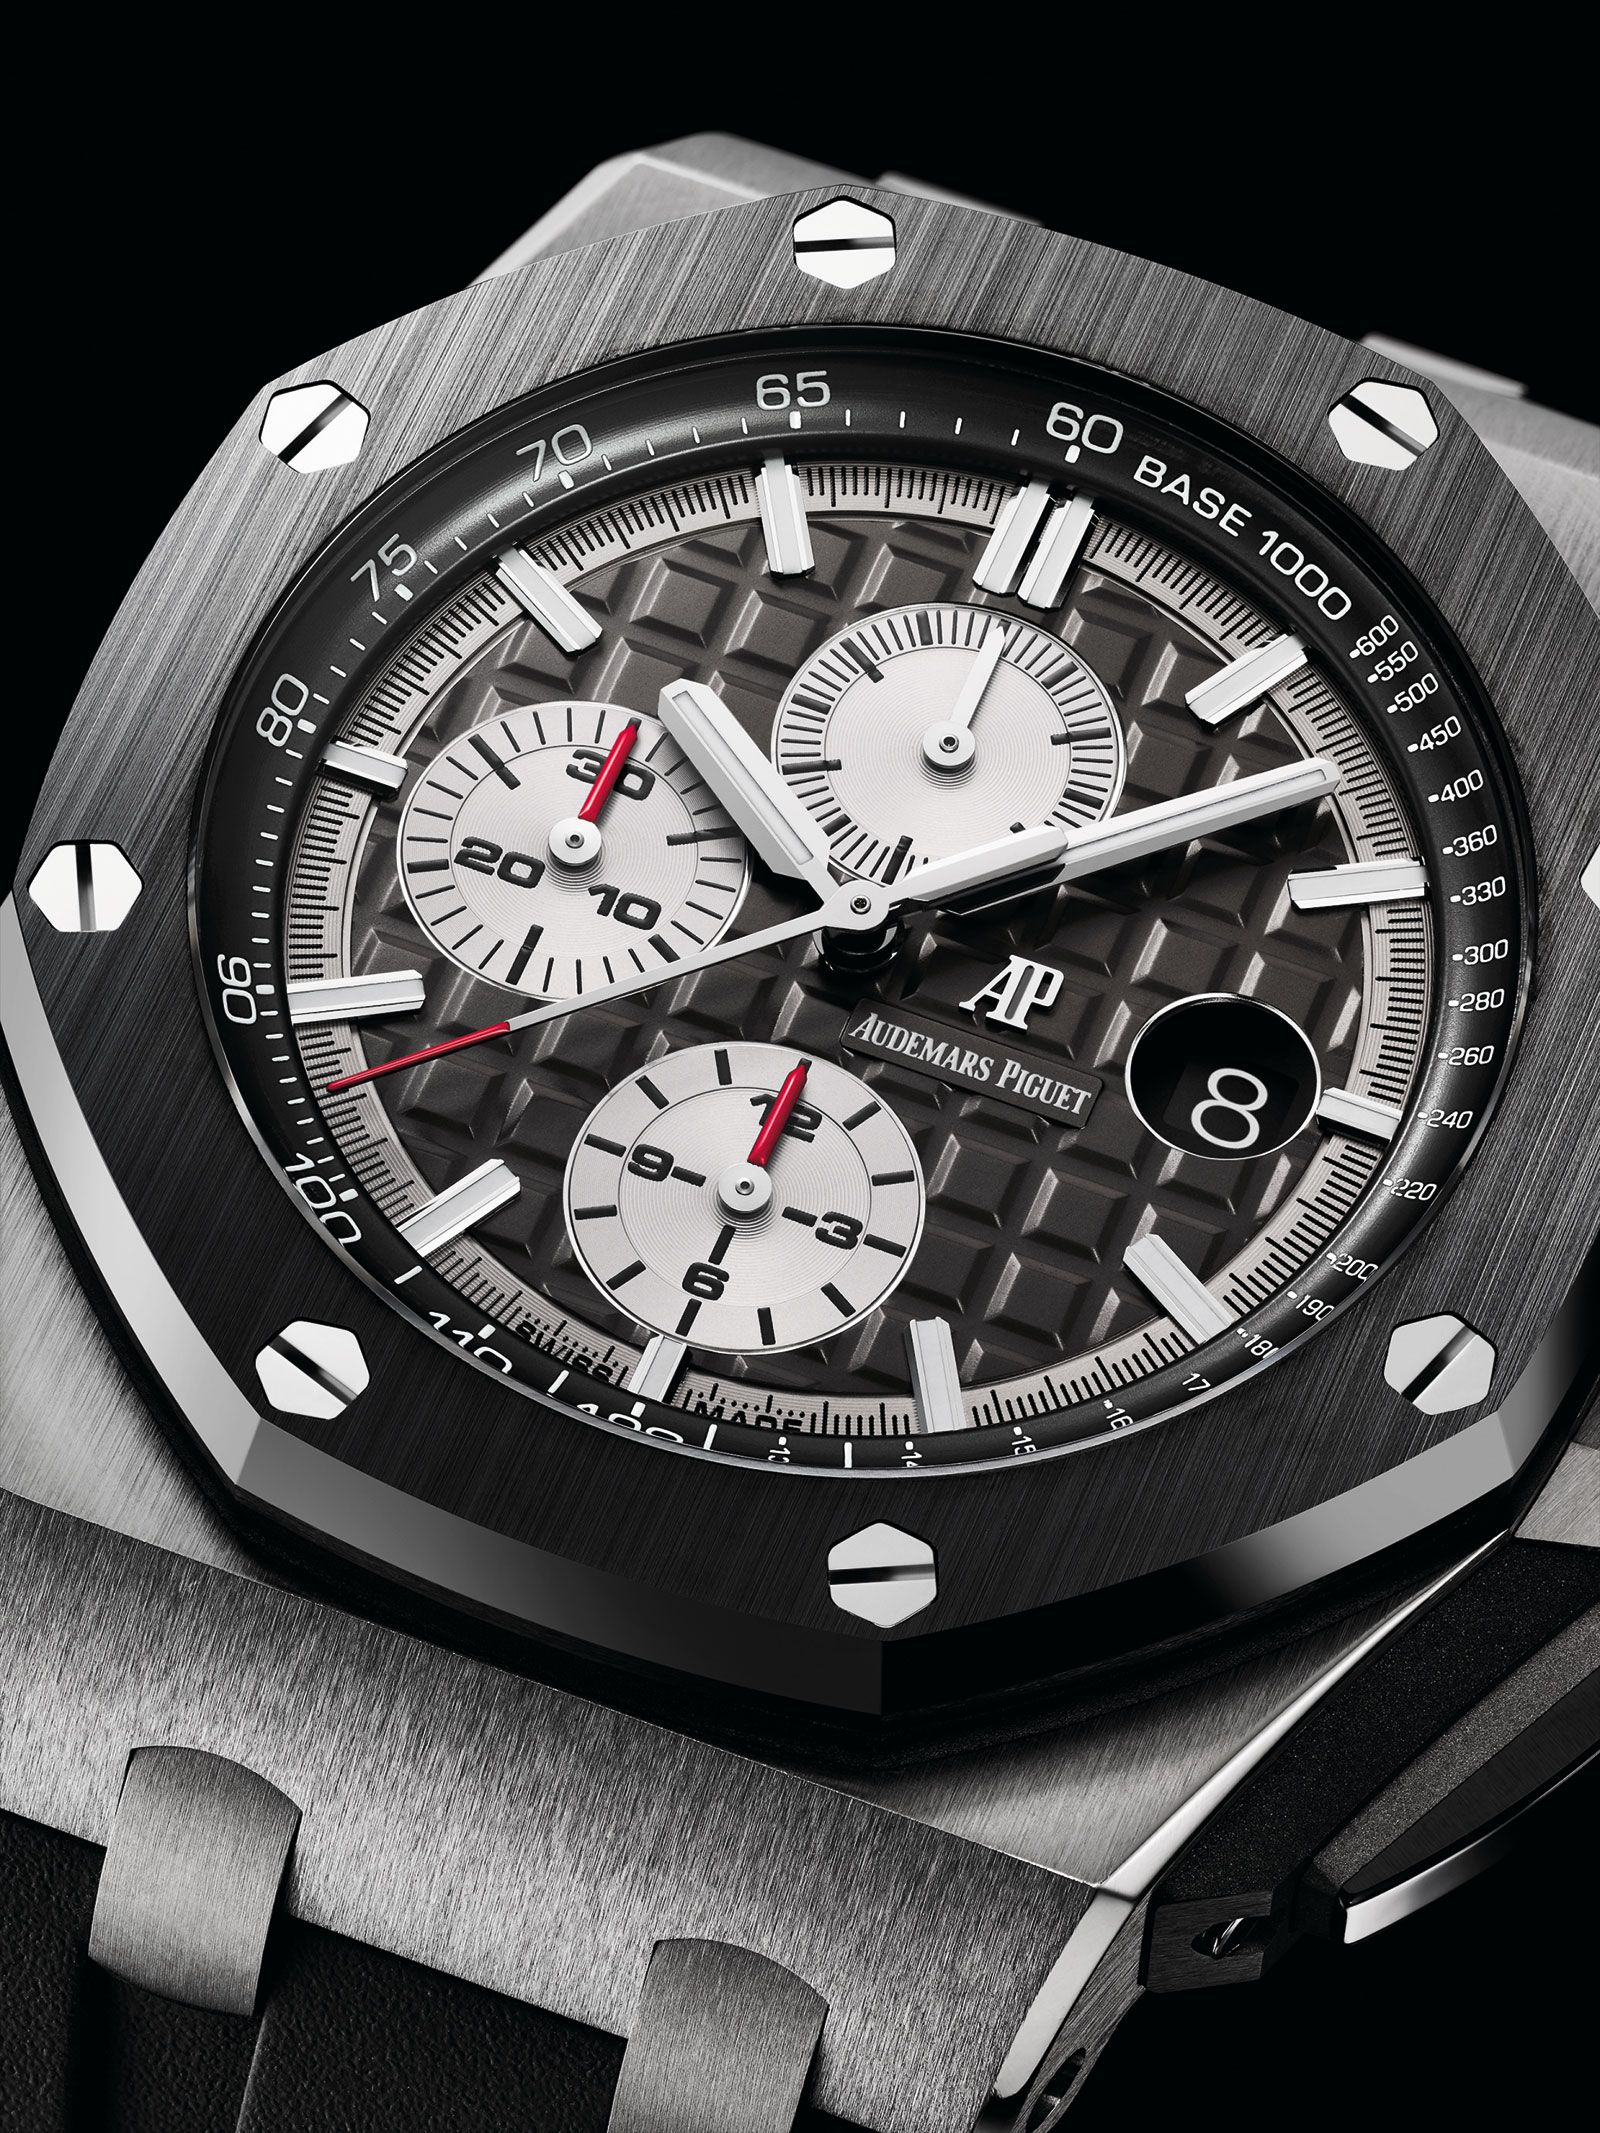 c2e89d93f9c Audemars Piguet Royal Oak Offshore Novelty titanium 26400IO-1 ...